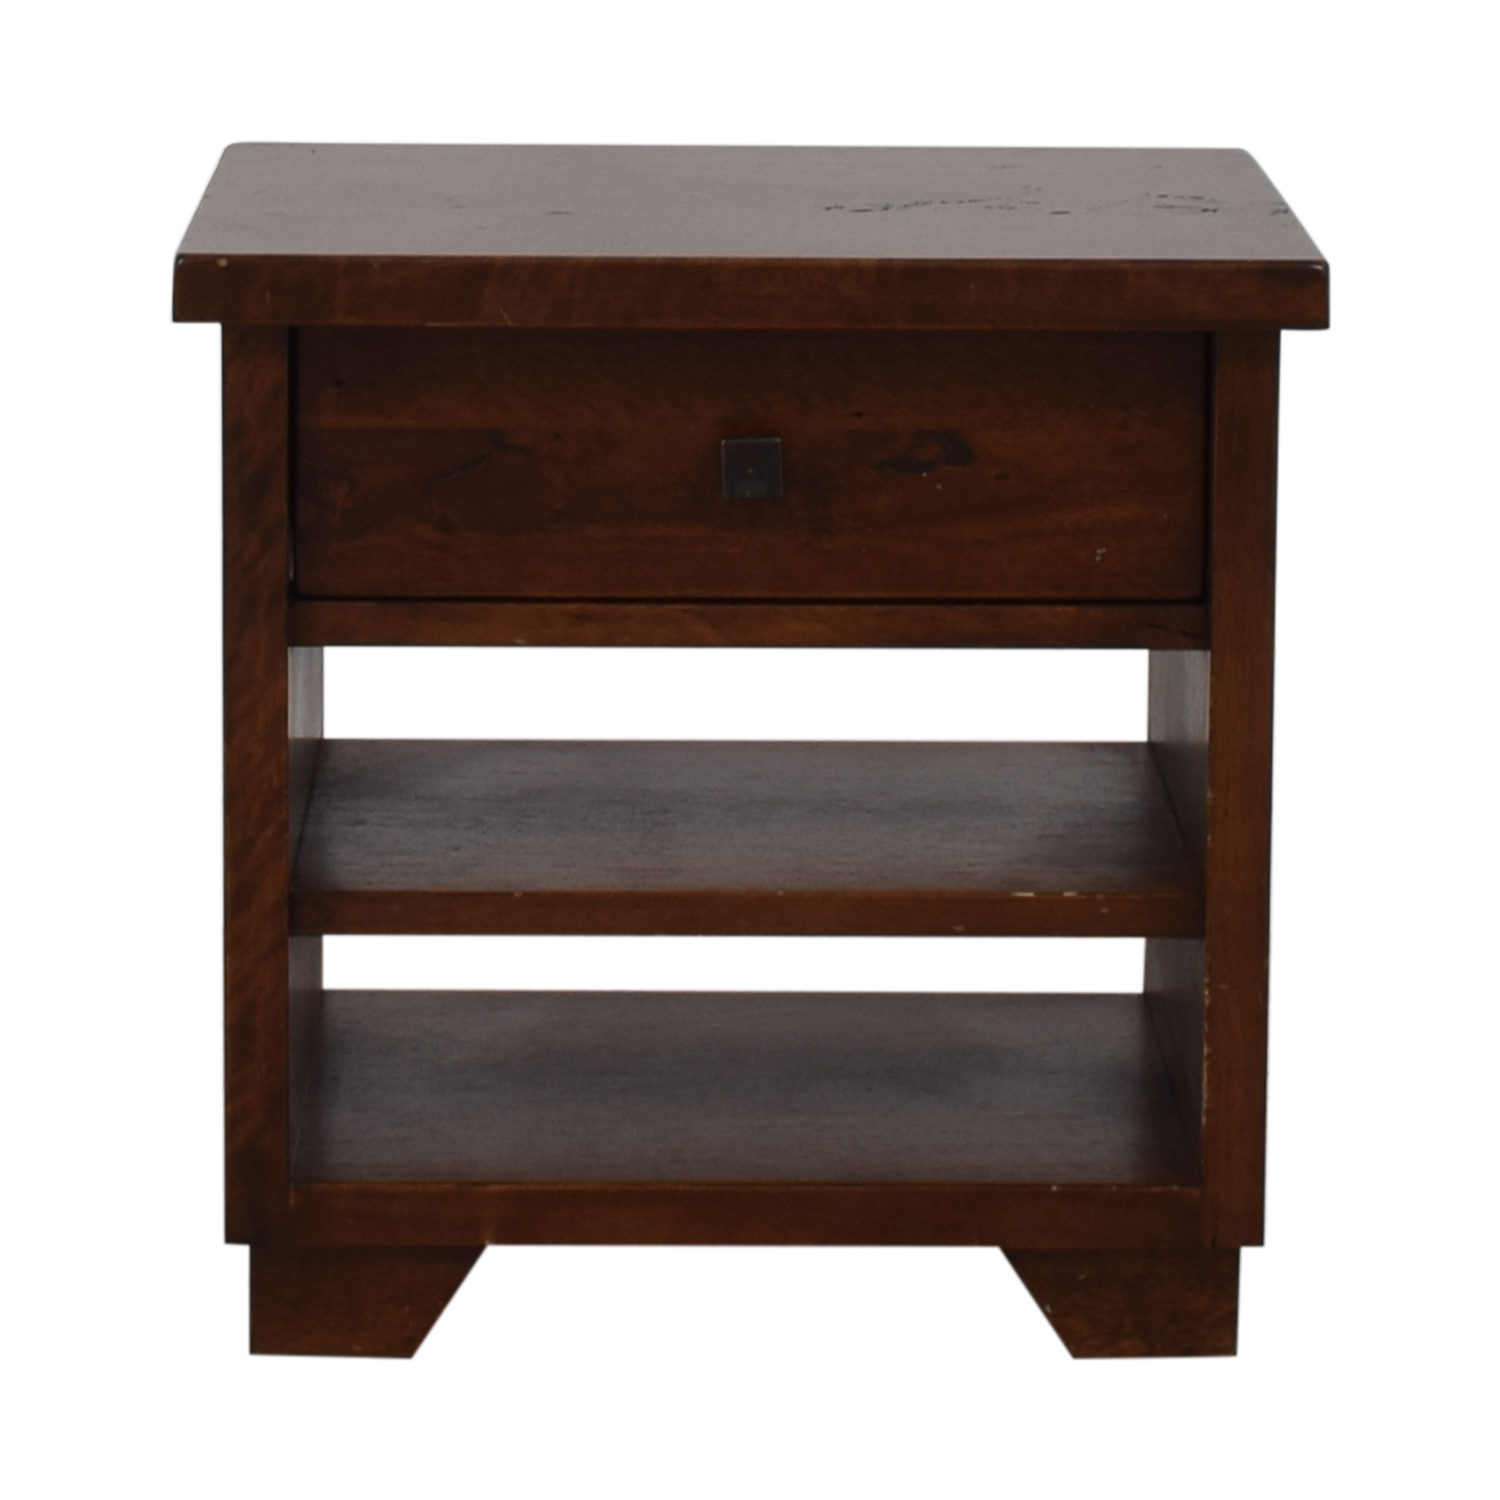 Pottery Barn Pottery Barn Sumatra Night Stand price